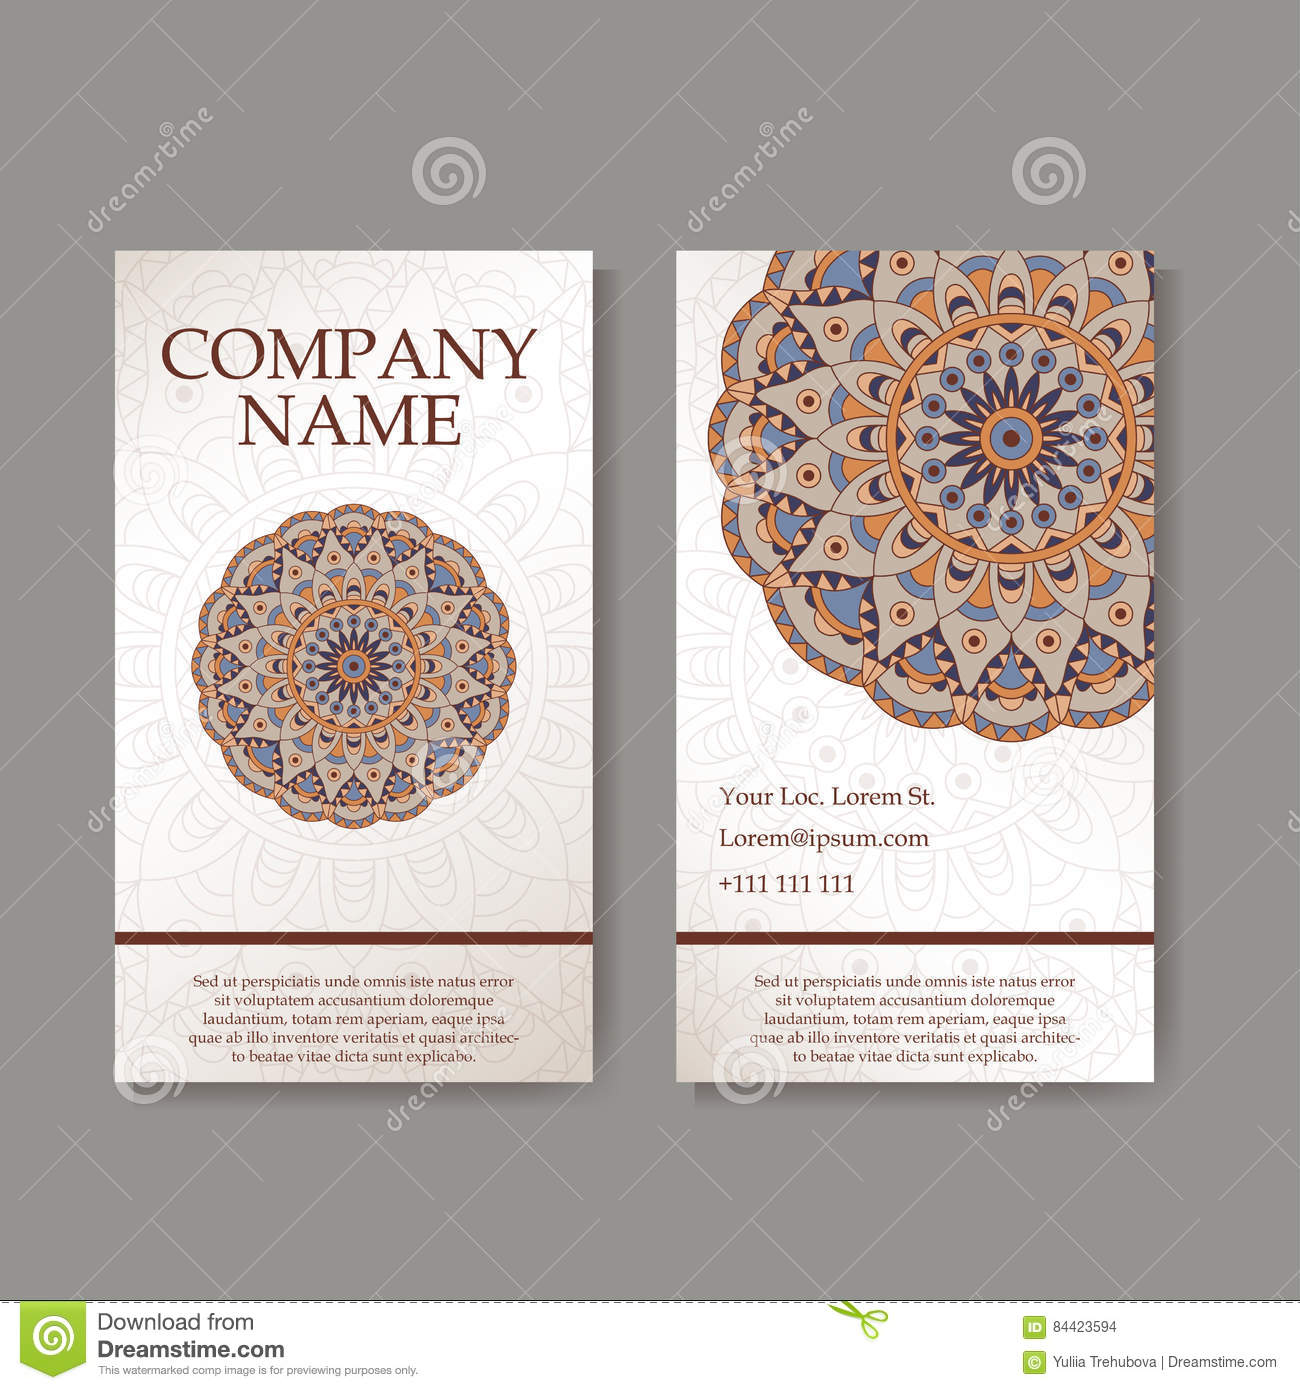 set of business cards vintage pattern in retro style with mandala